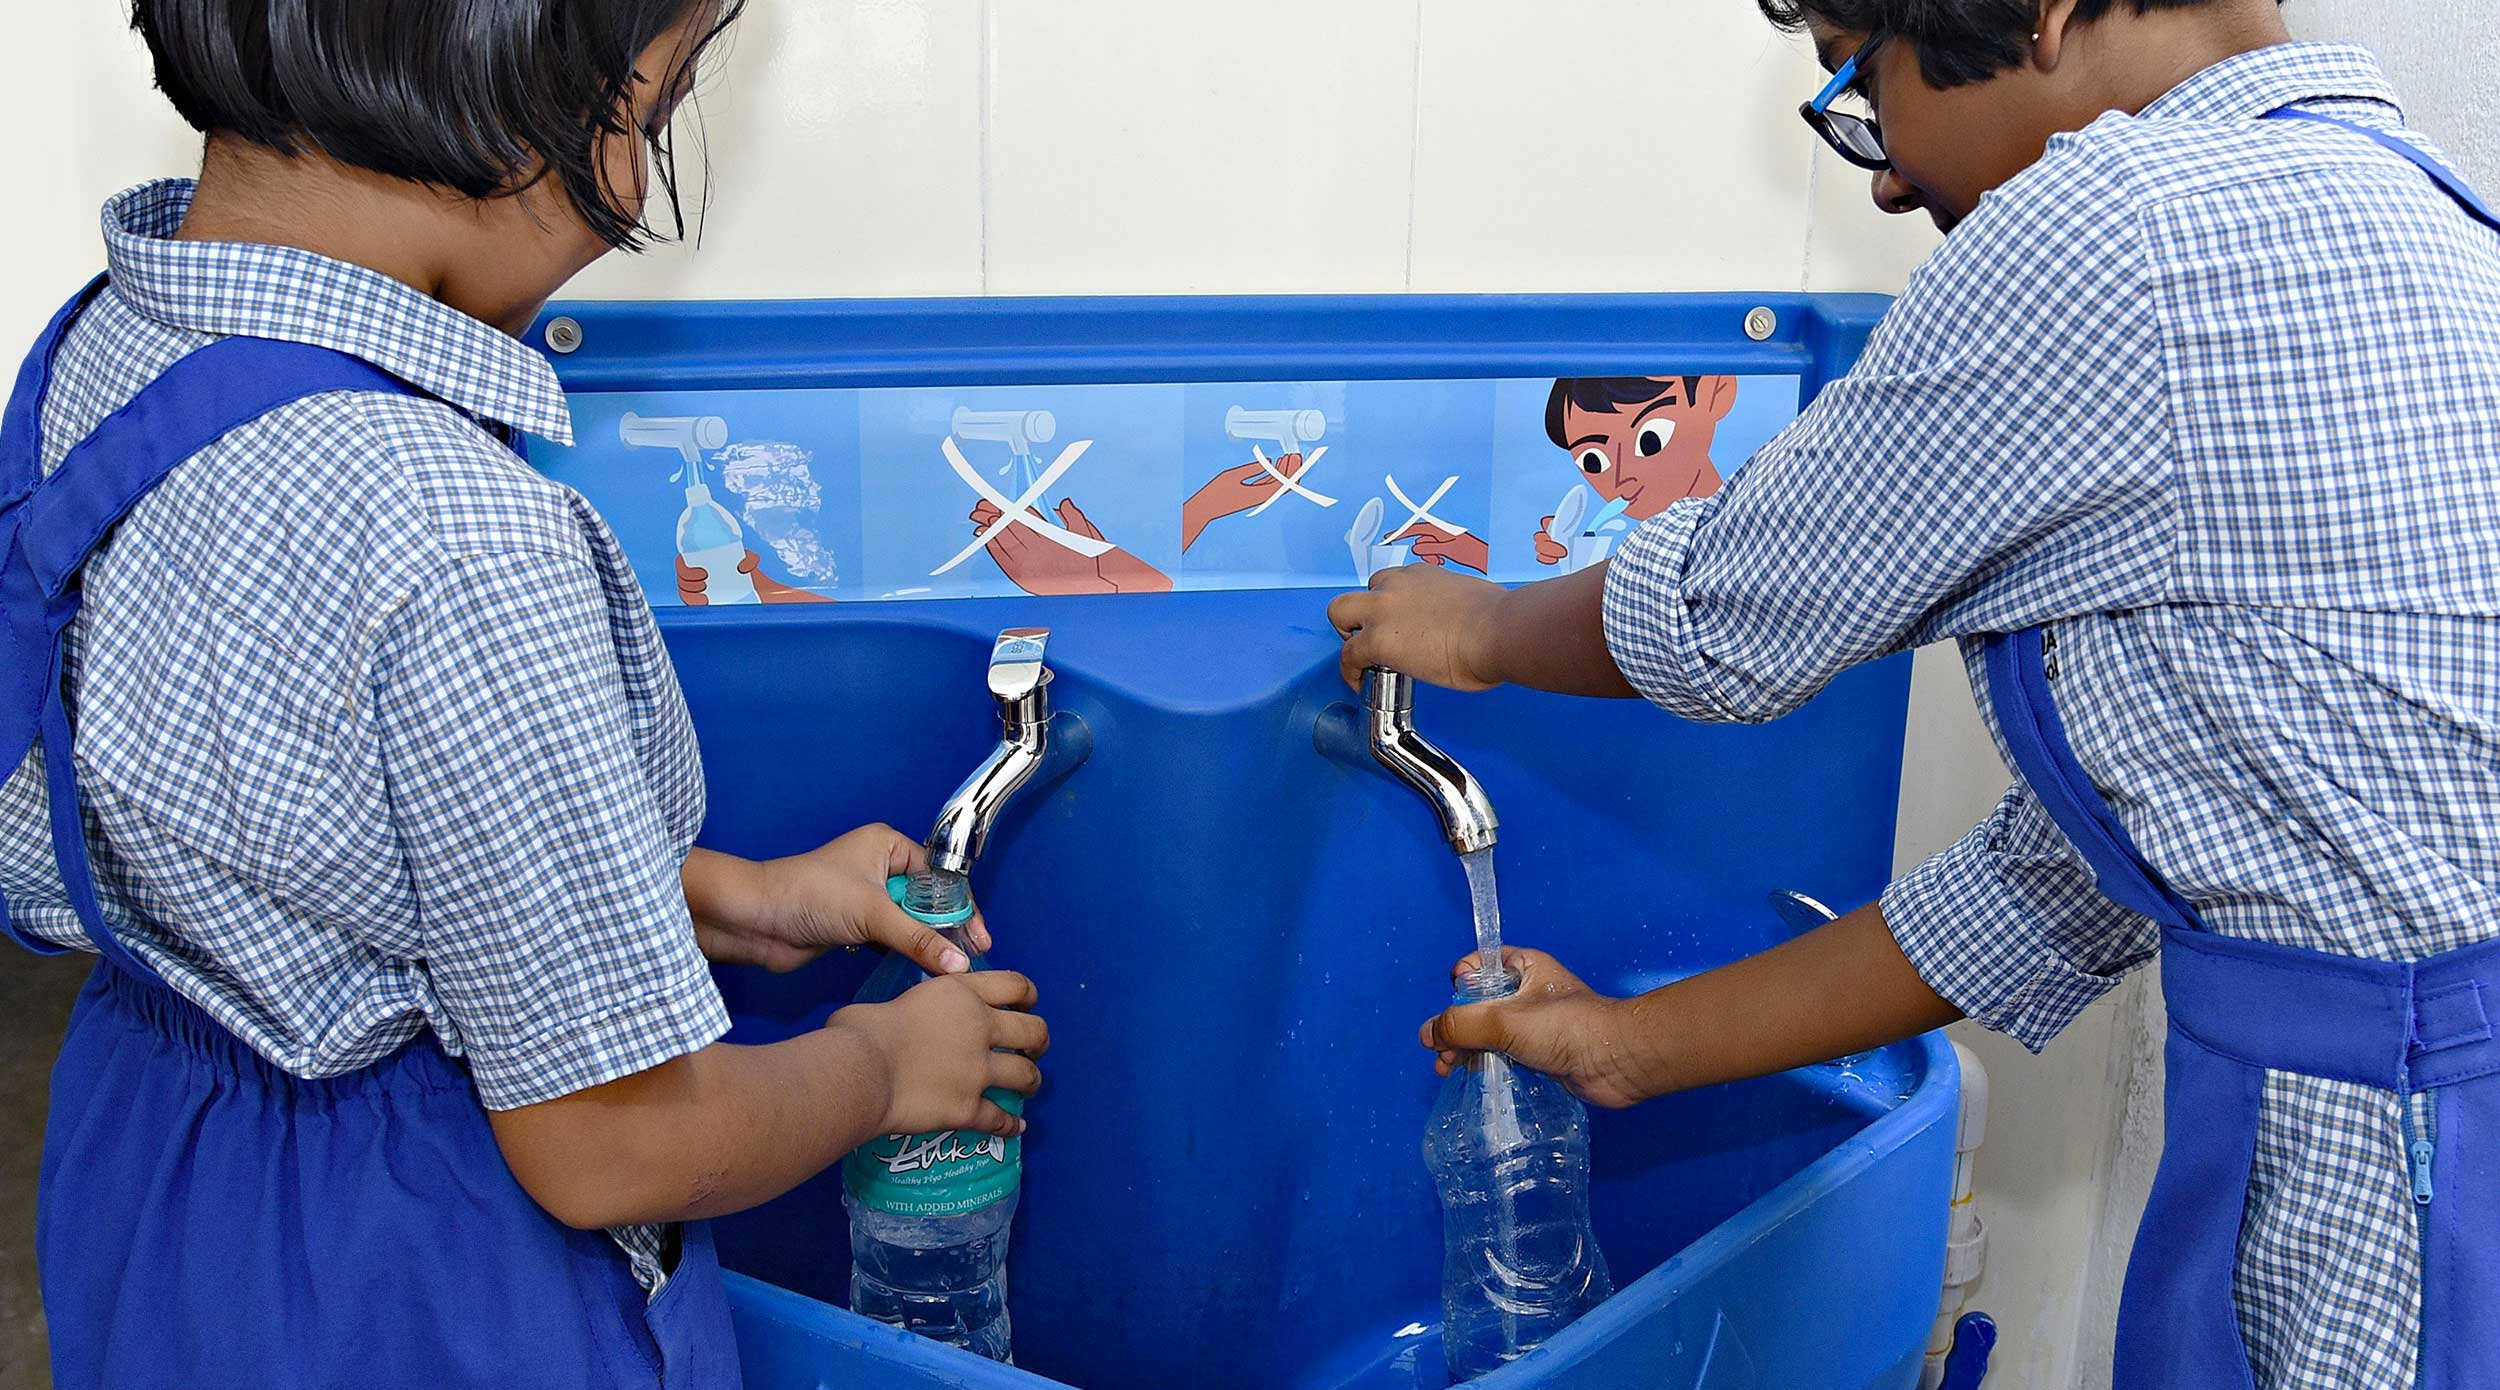 Two young girls in India wearing school uniforms and filling plastic water bottles from a blue Splash drinking water station.